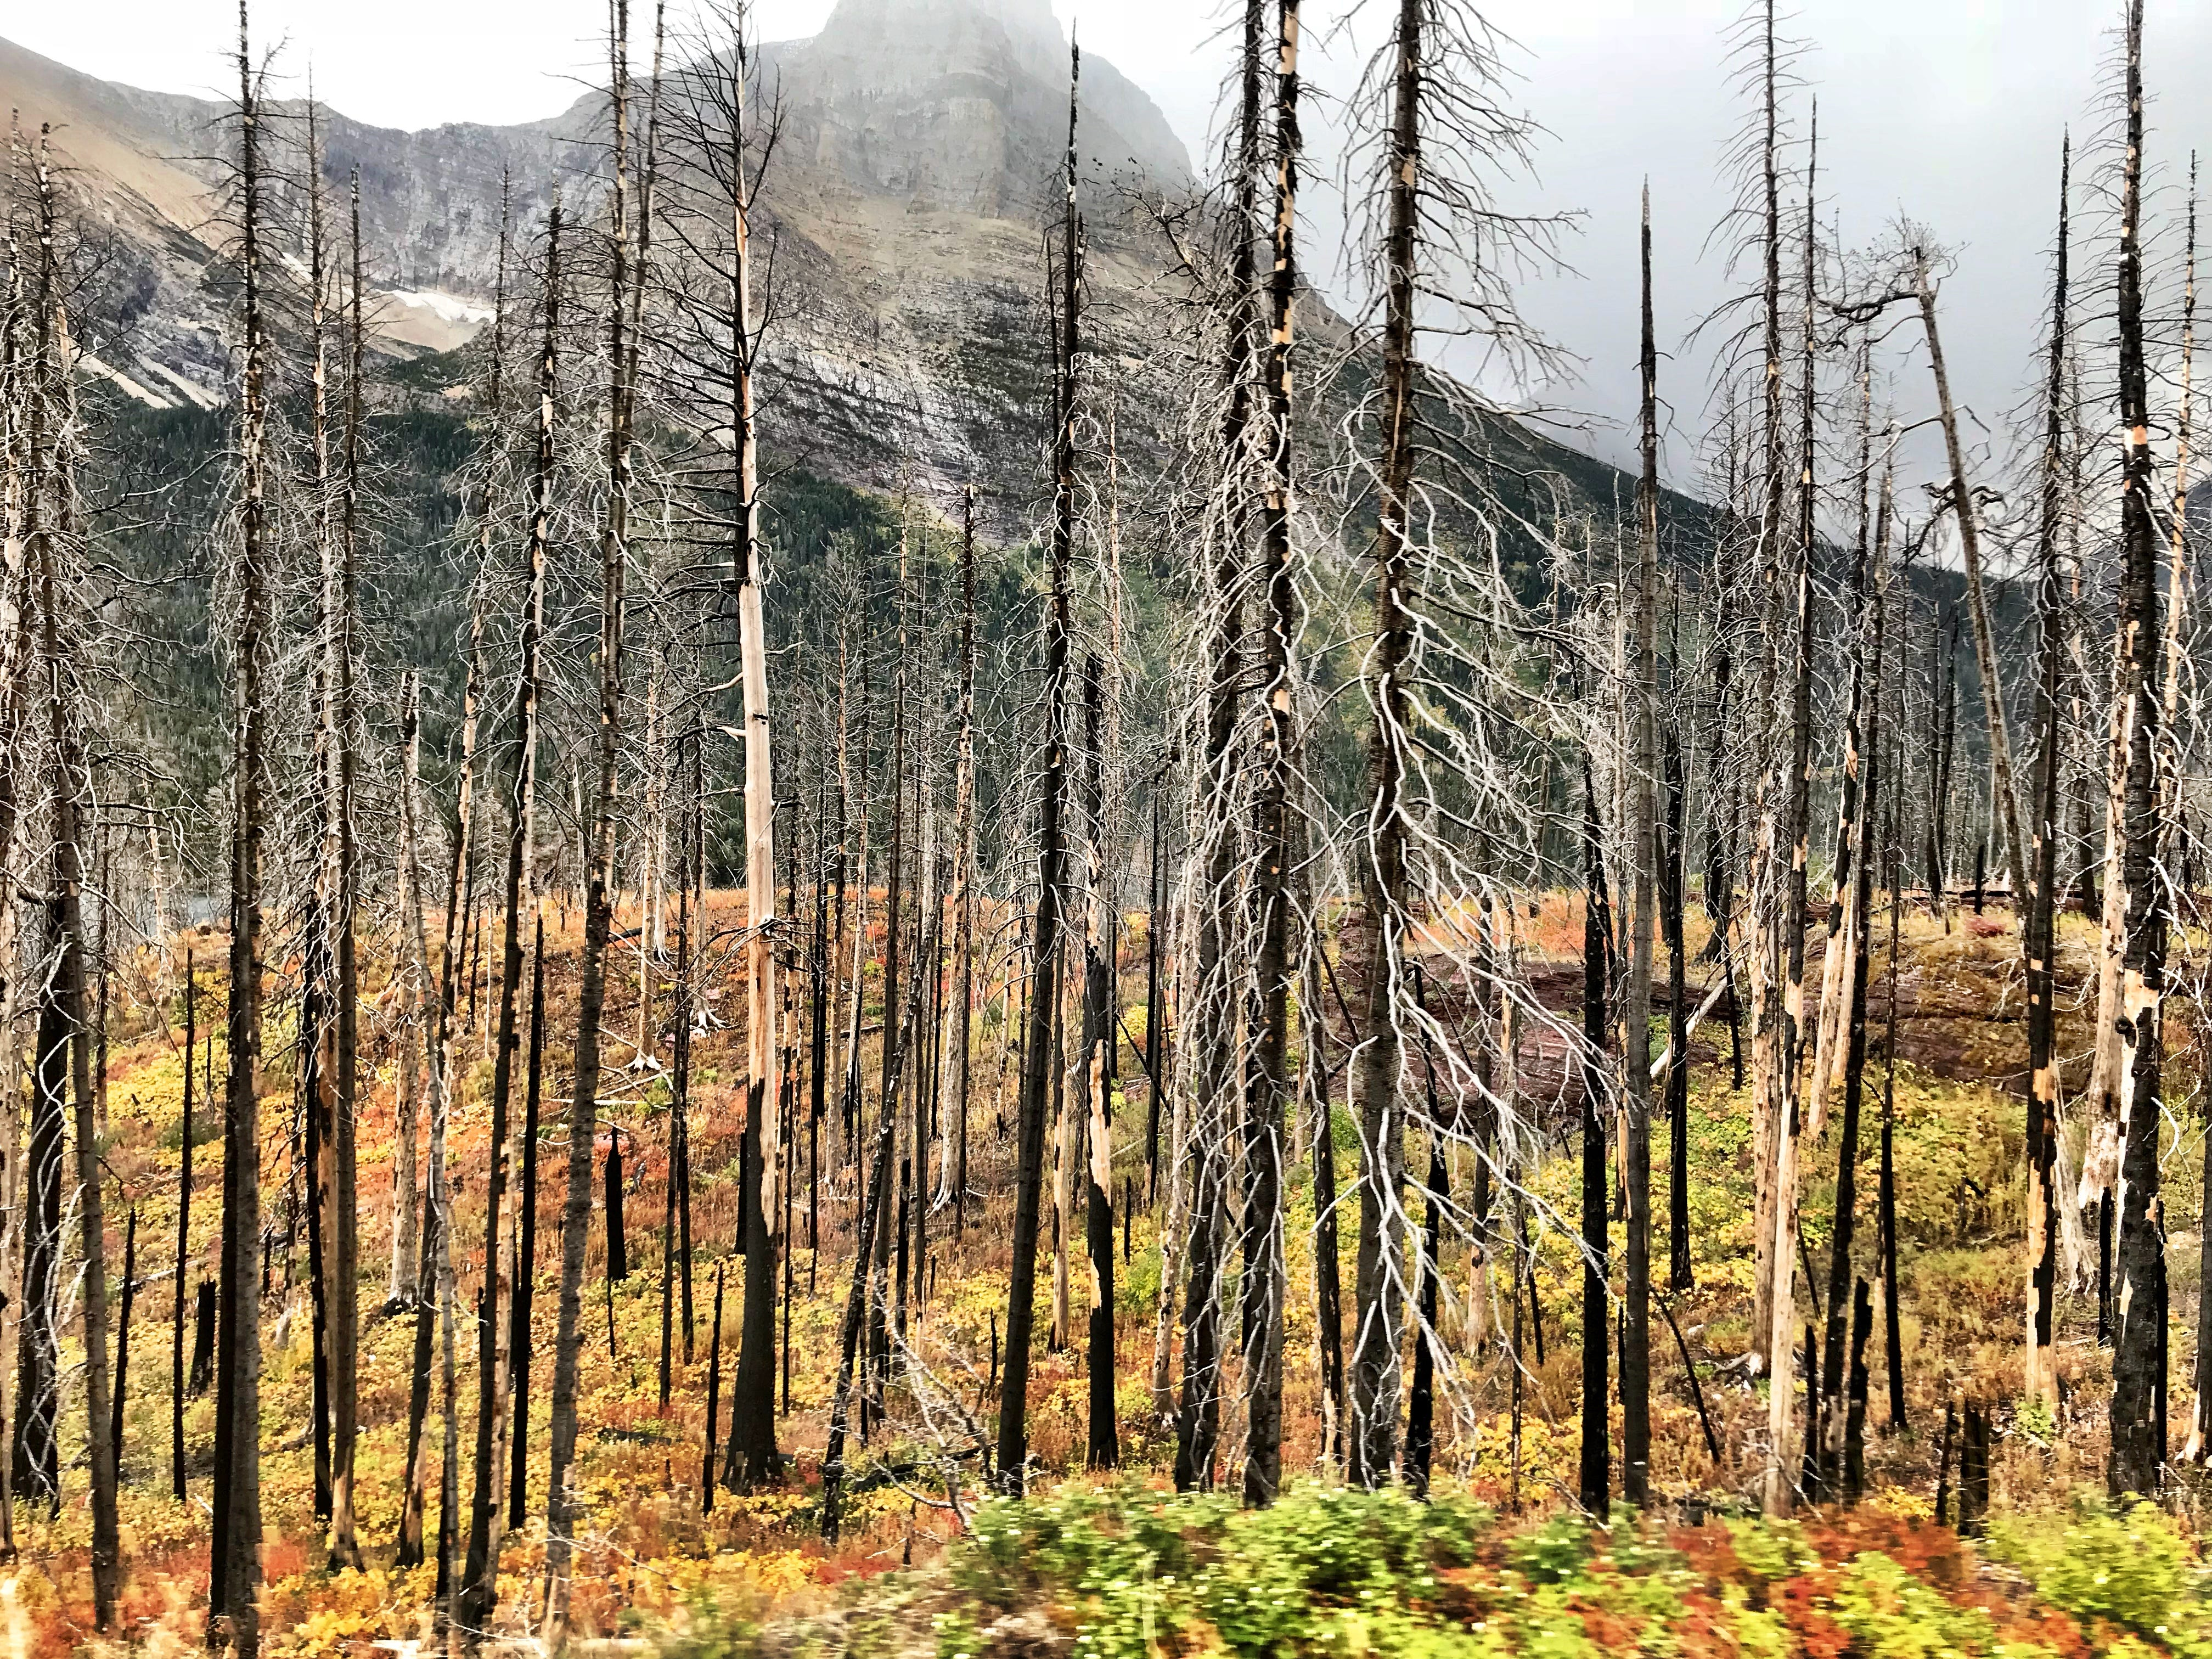 Fall colors amid a burned area in mid-September in Glacier National Park